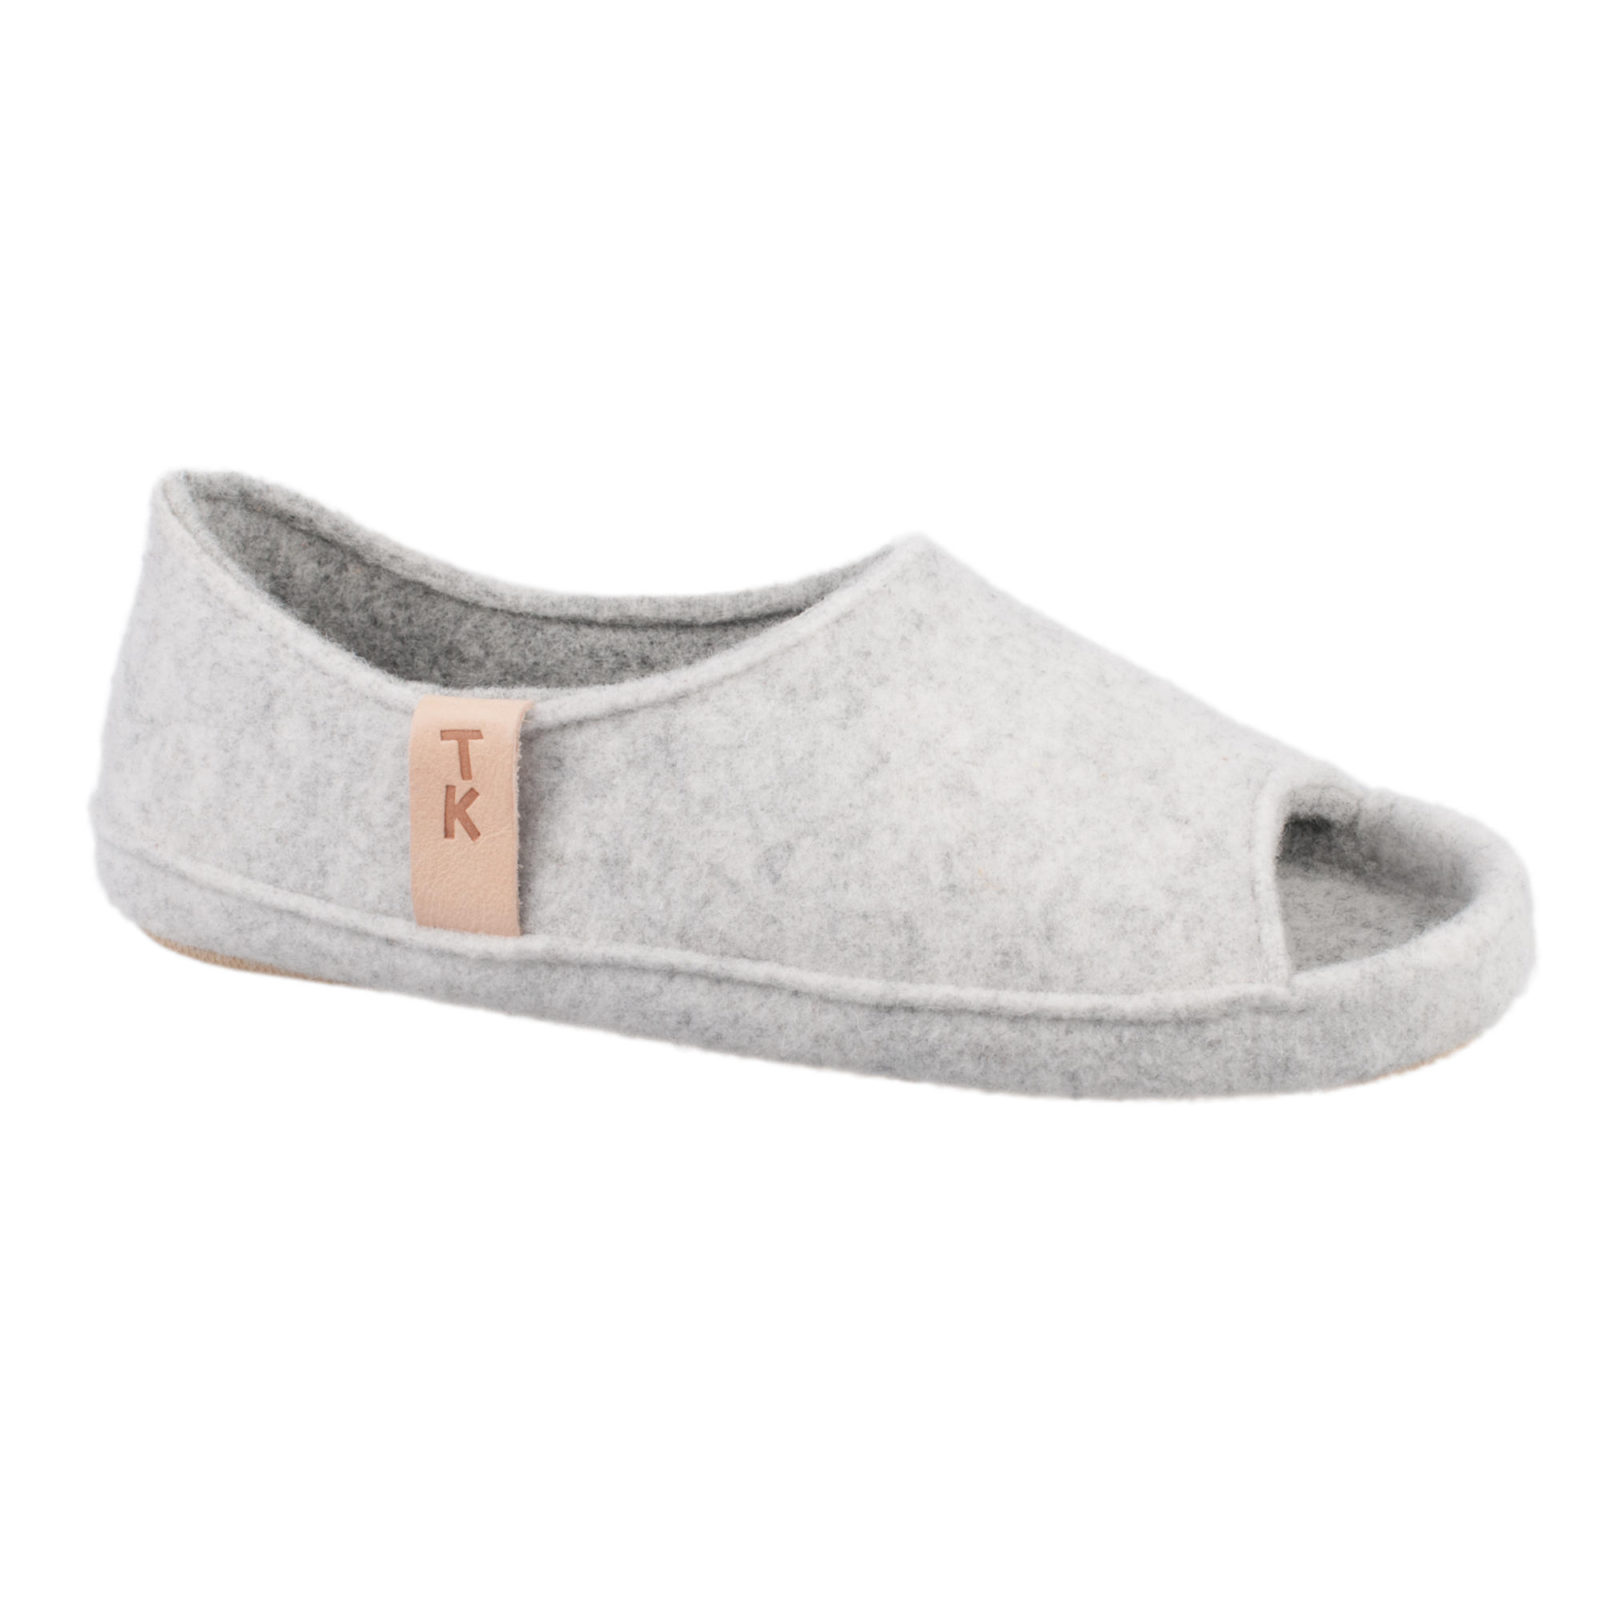 Comfortable unisex slippers